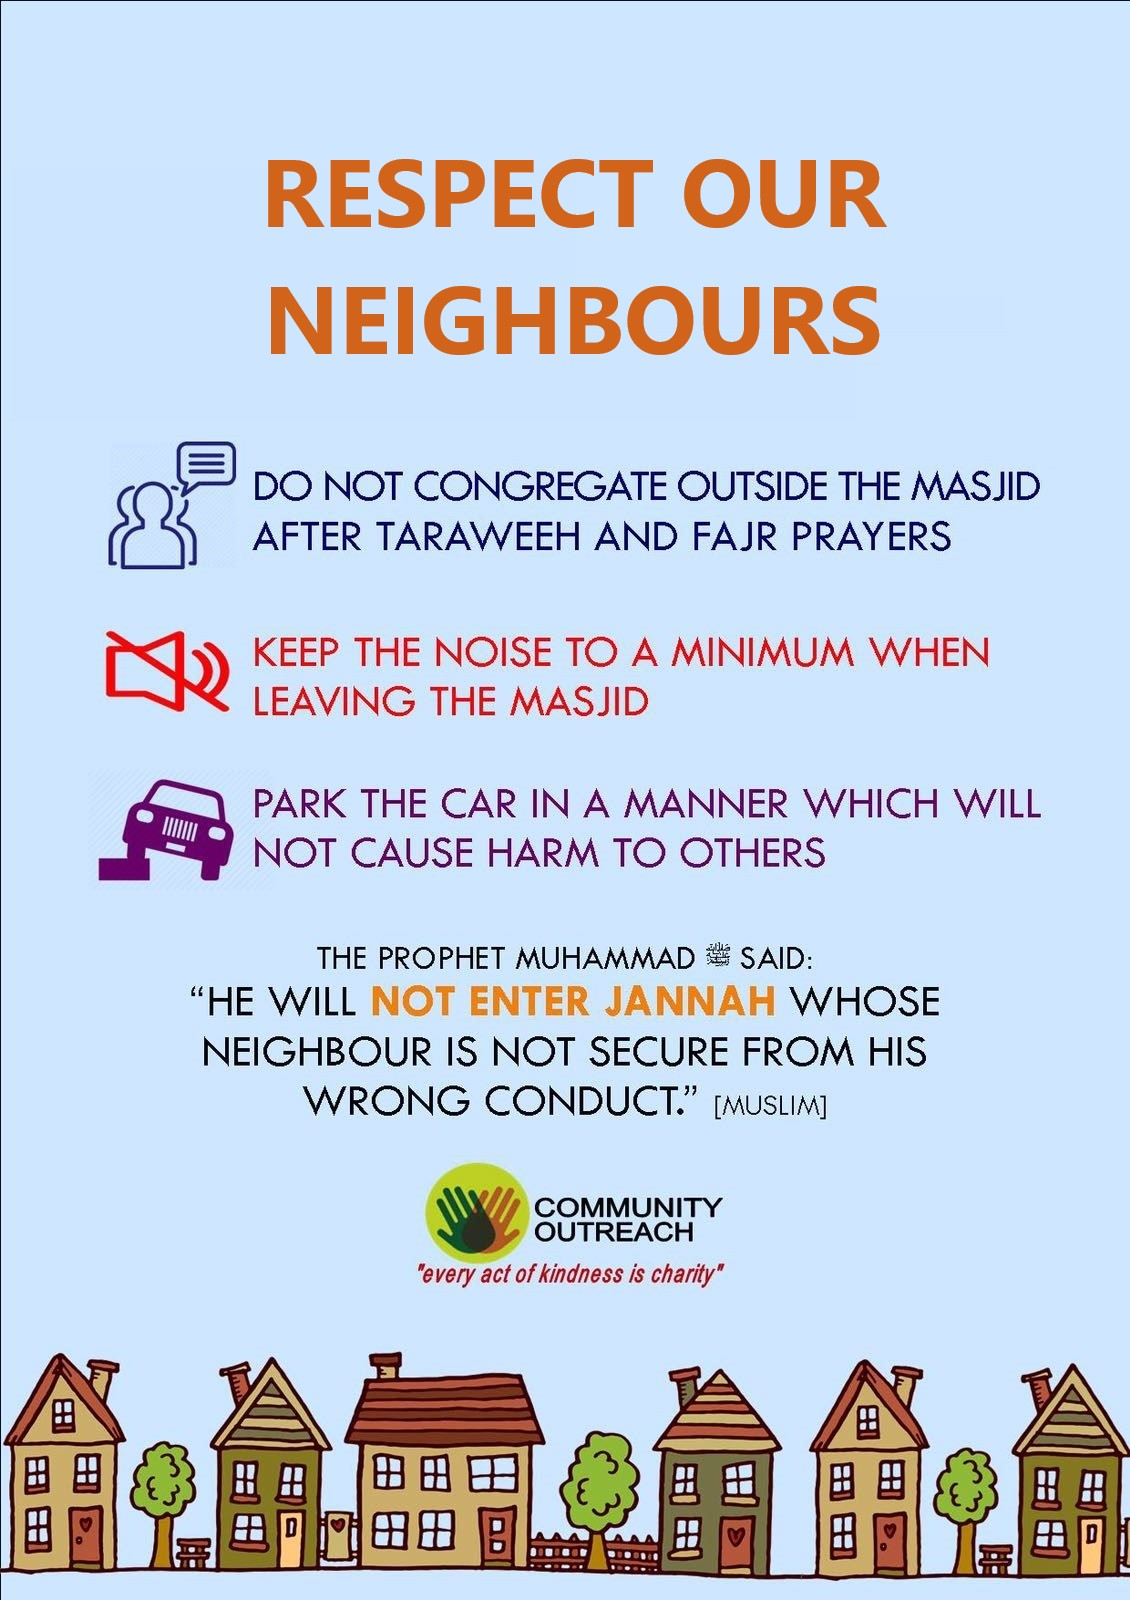 Respect mosque neighbours when coming to the mosque